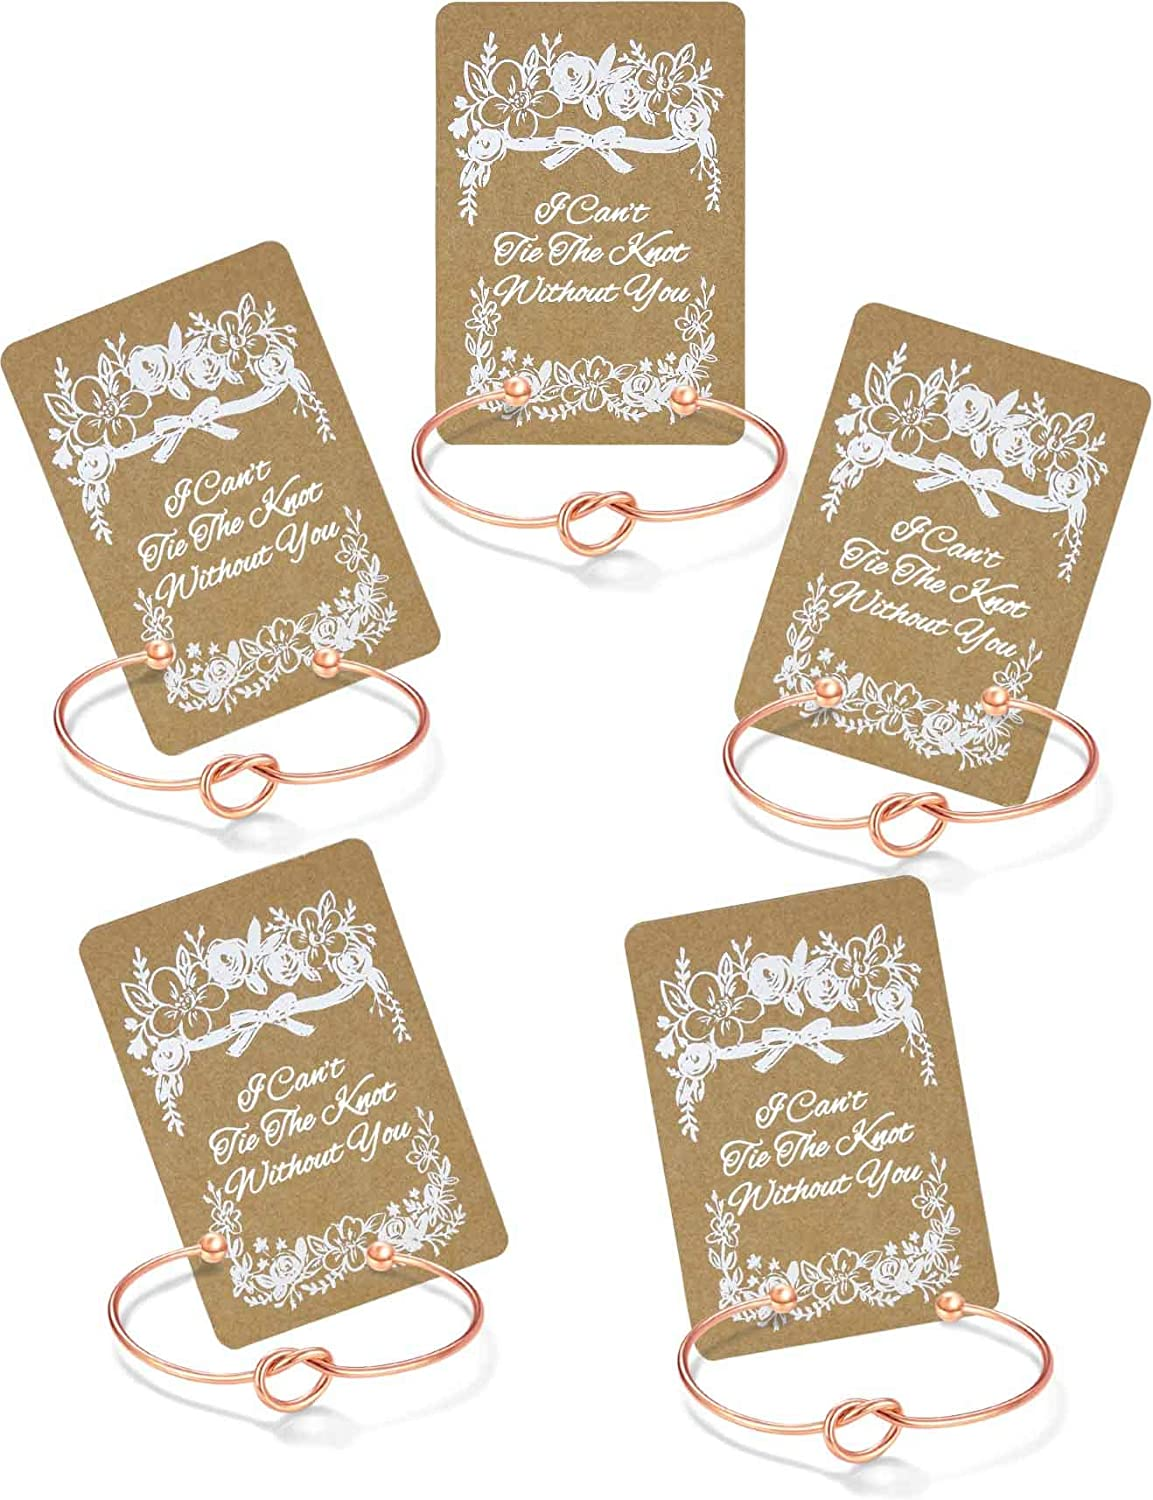 Bracelets with Bridesmaid Gifts Cards -Set of 1 Bridesmaid Proposal Box Must Have 5 7 6 4